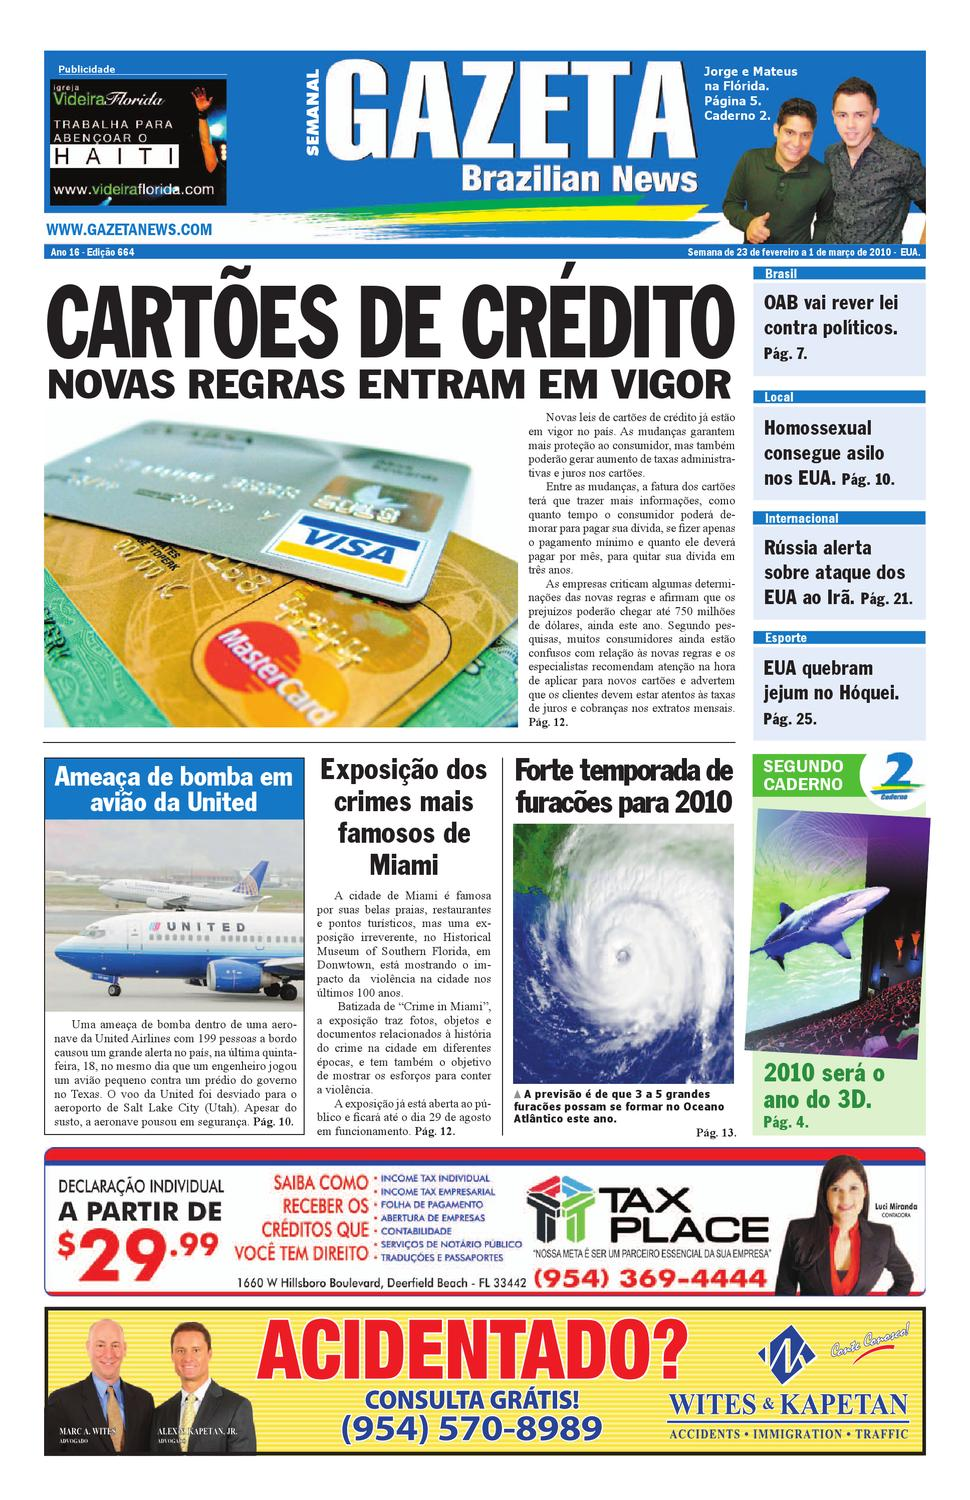 93fbe1204405f Gazeta Brazilian News - Edição 664 by Gazeta Brazilian News - issuu